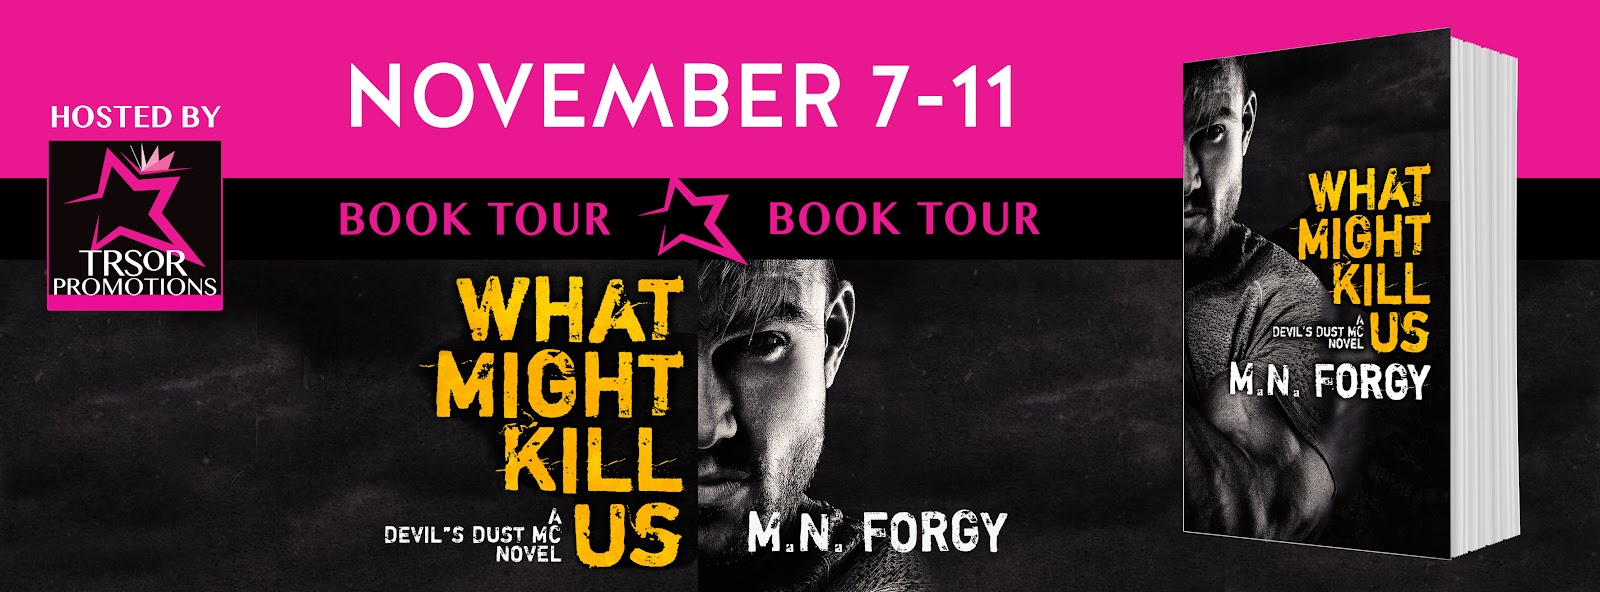 WHAT_MIGHT_KILL_US_BOOK_TOUR.jpg